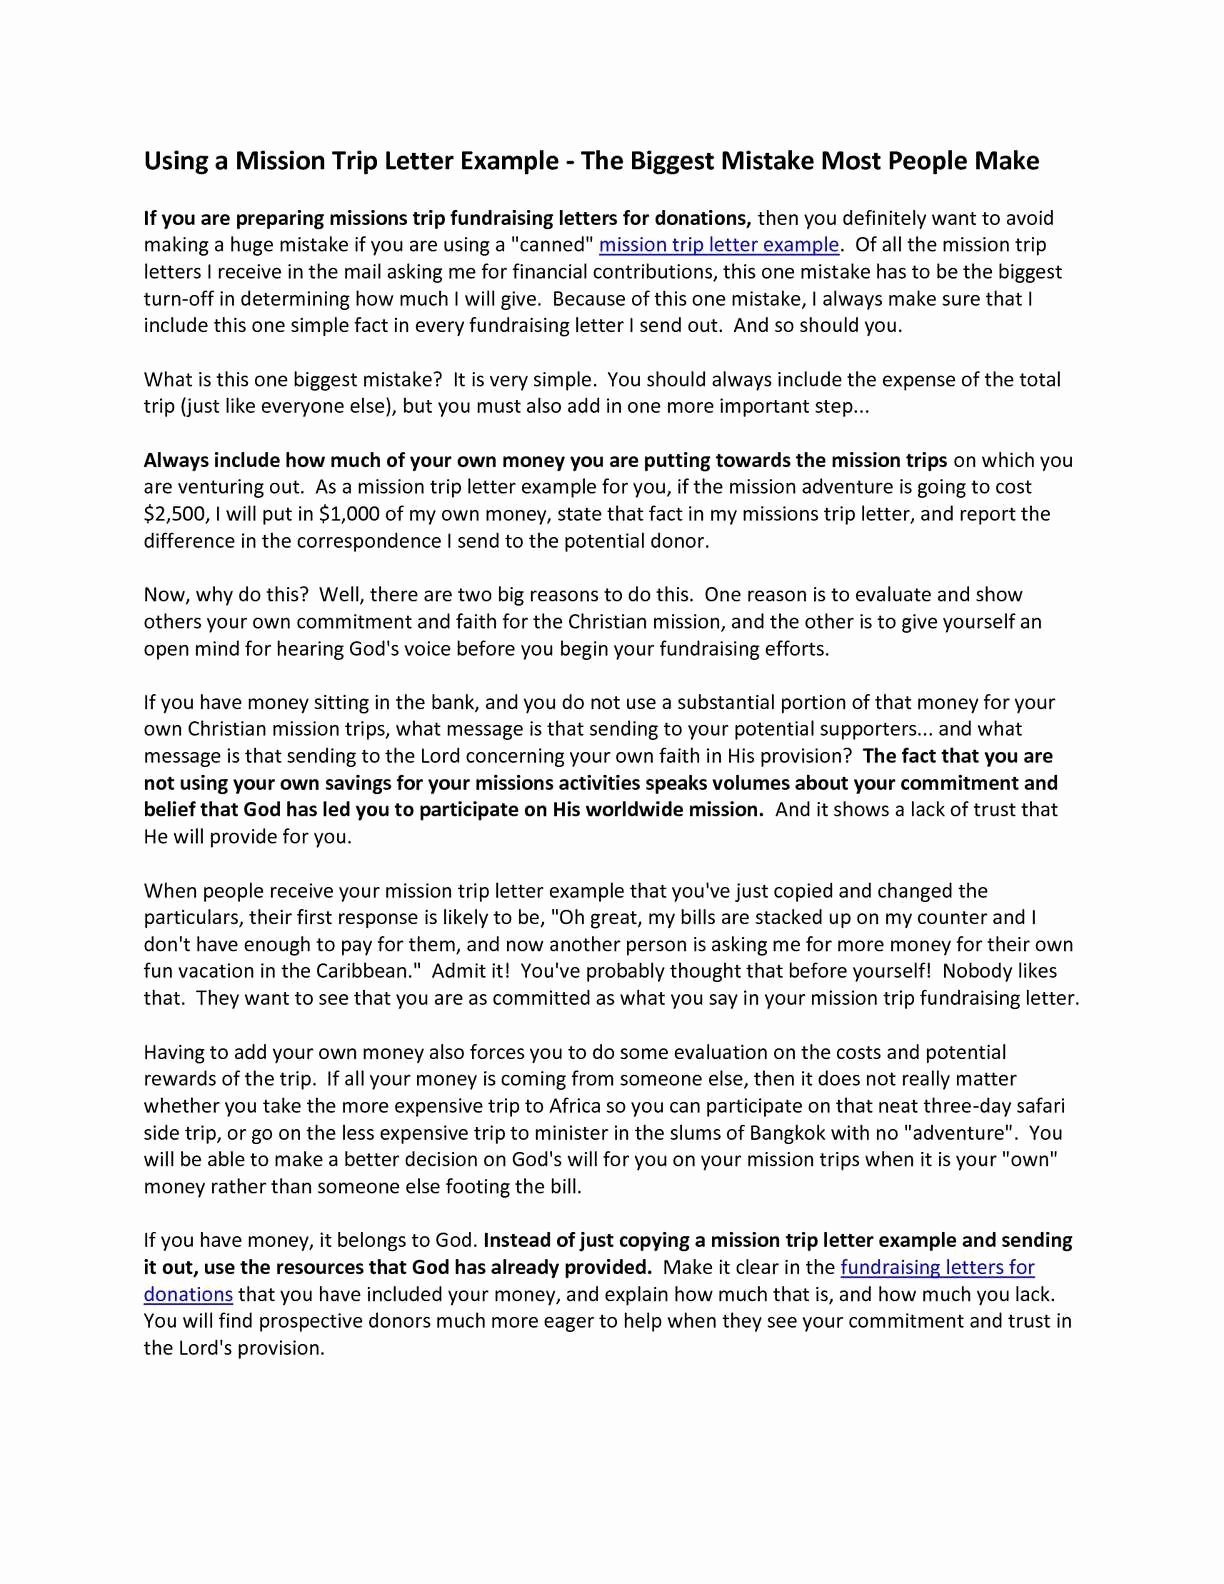 Fundraising Letters for Mission Trips Elegant Calaméo Mission Trip Letter Example